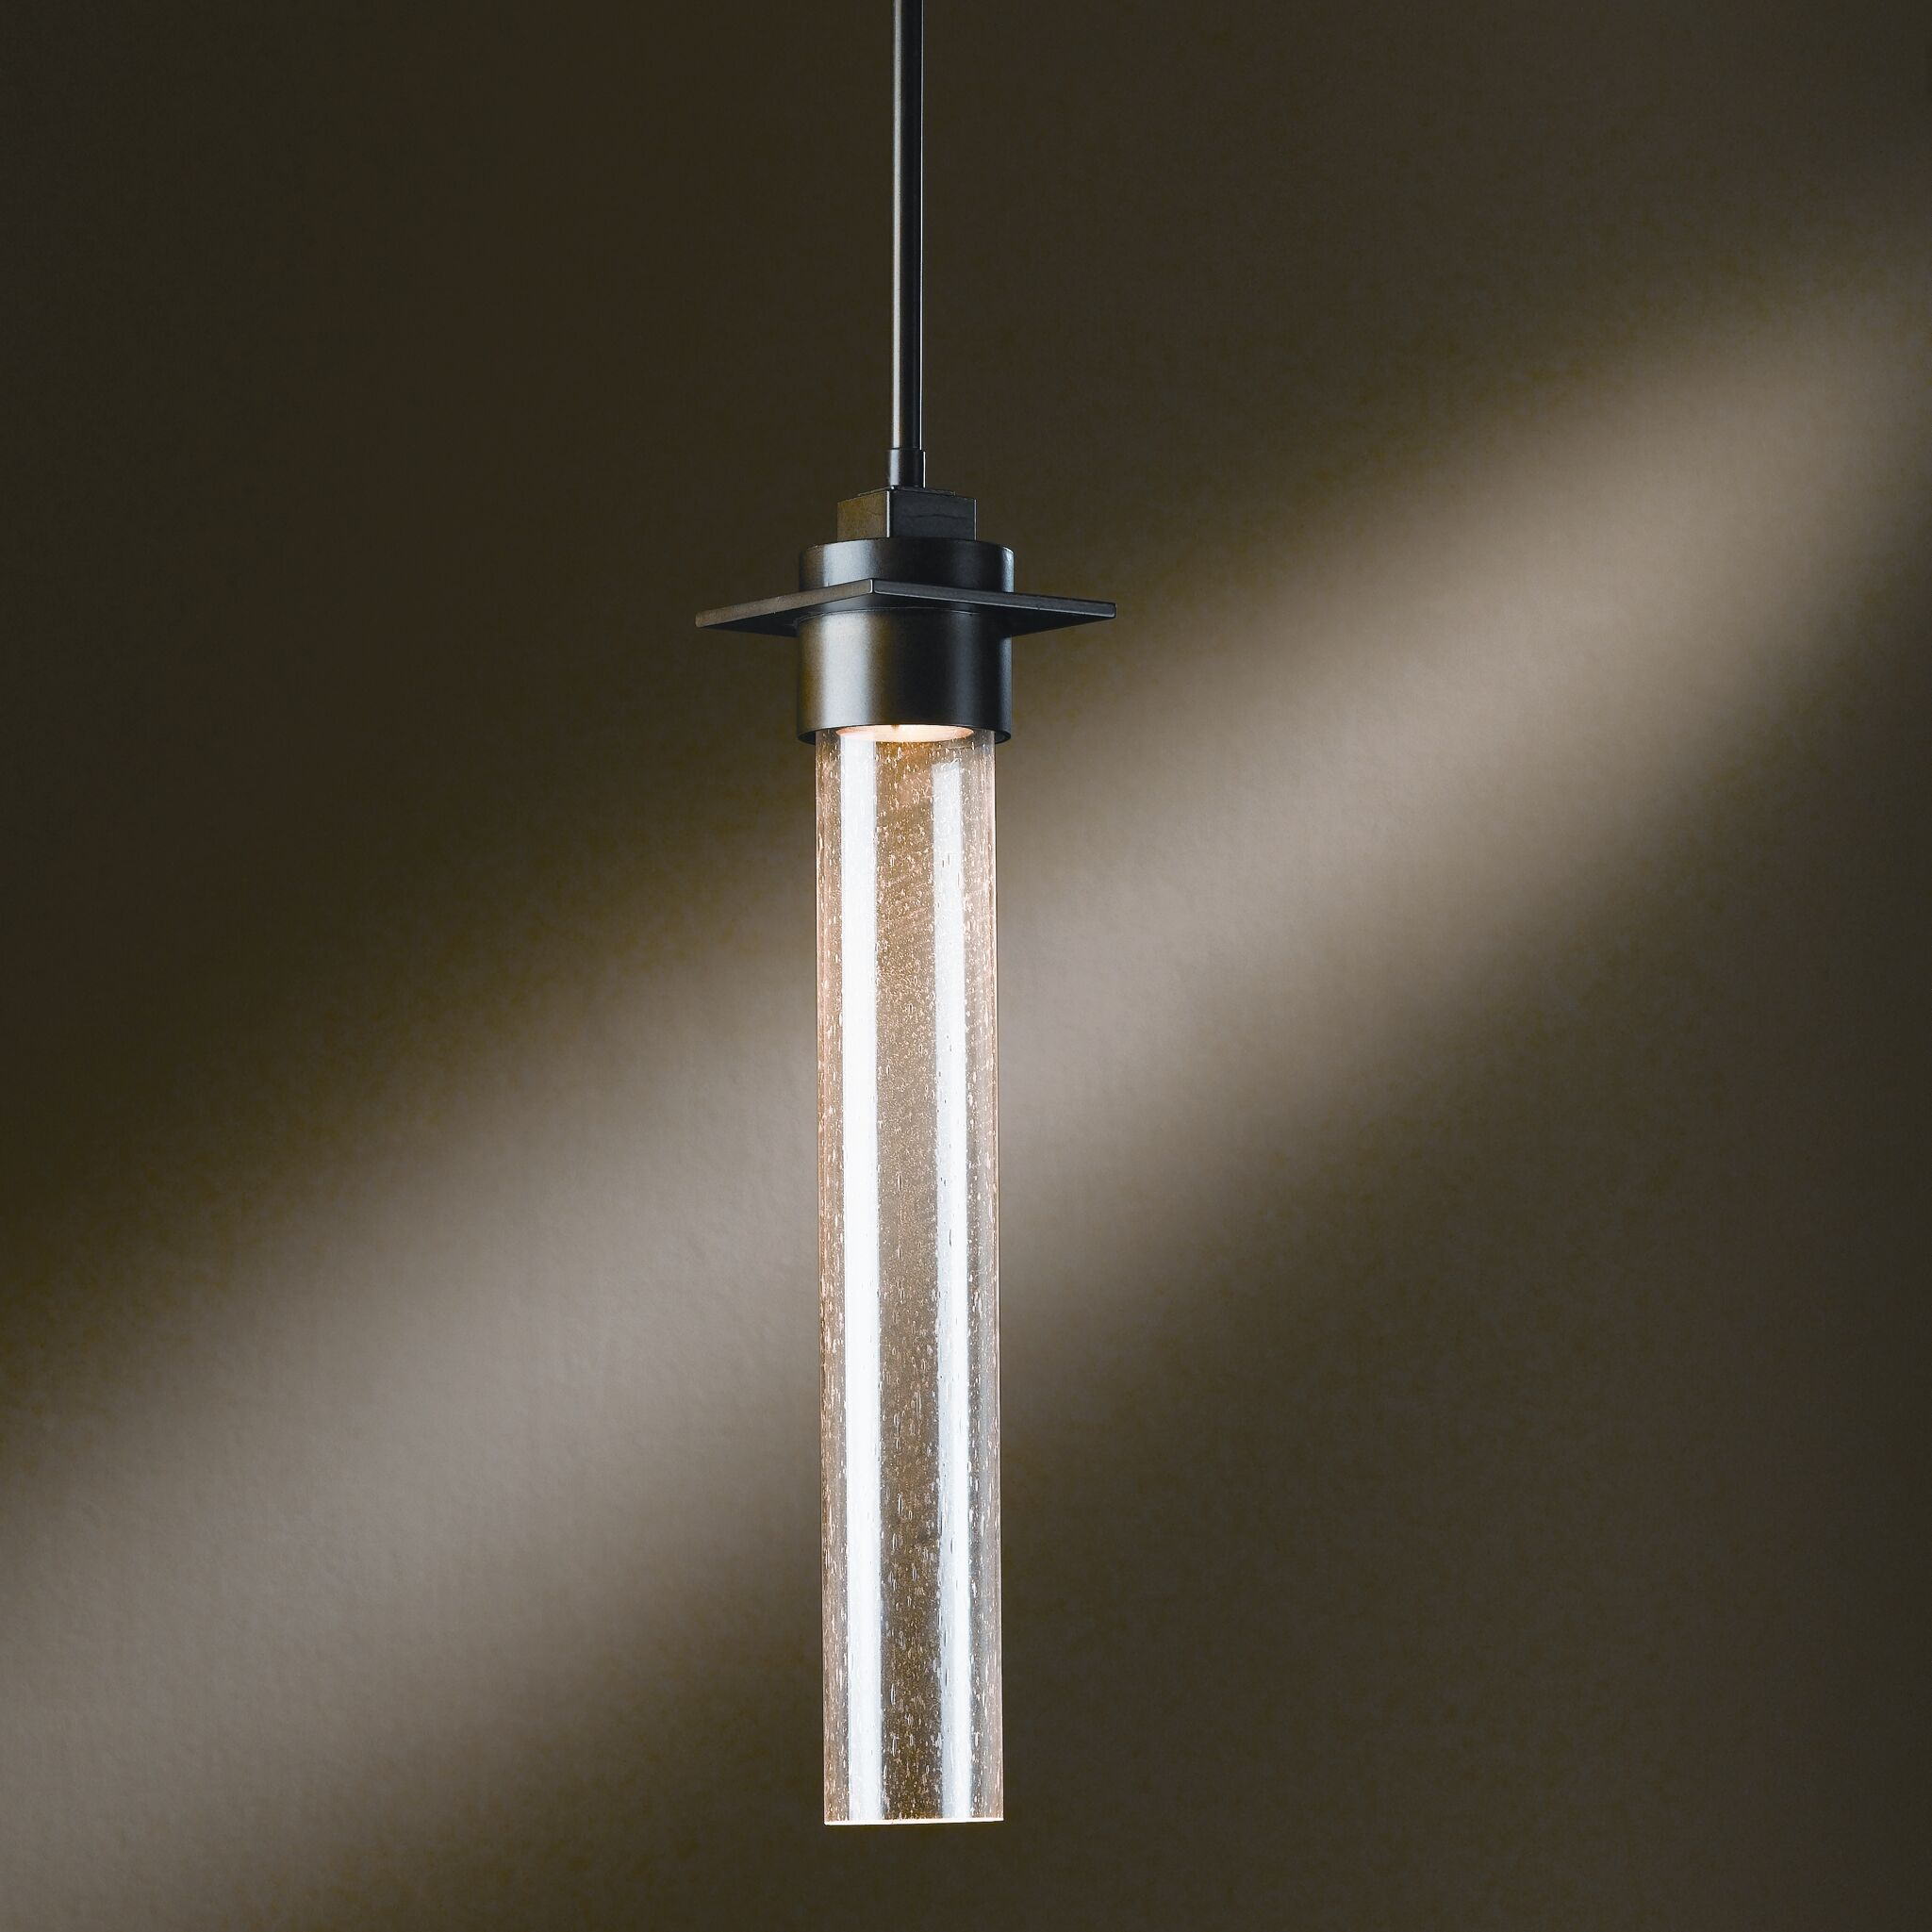 Airis 1-Light Cylinder Pendant Finish: Translucent Mahogany, Glass: Mess Tube Diffuser